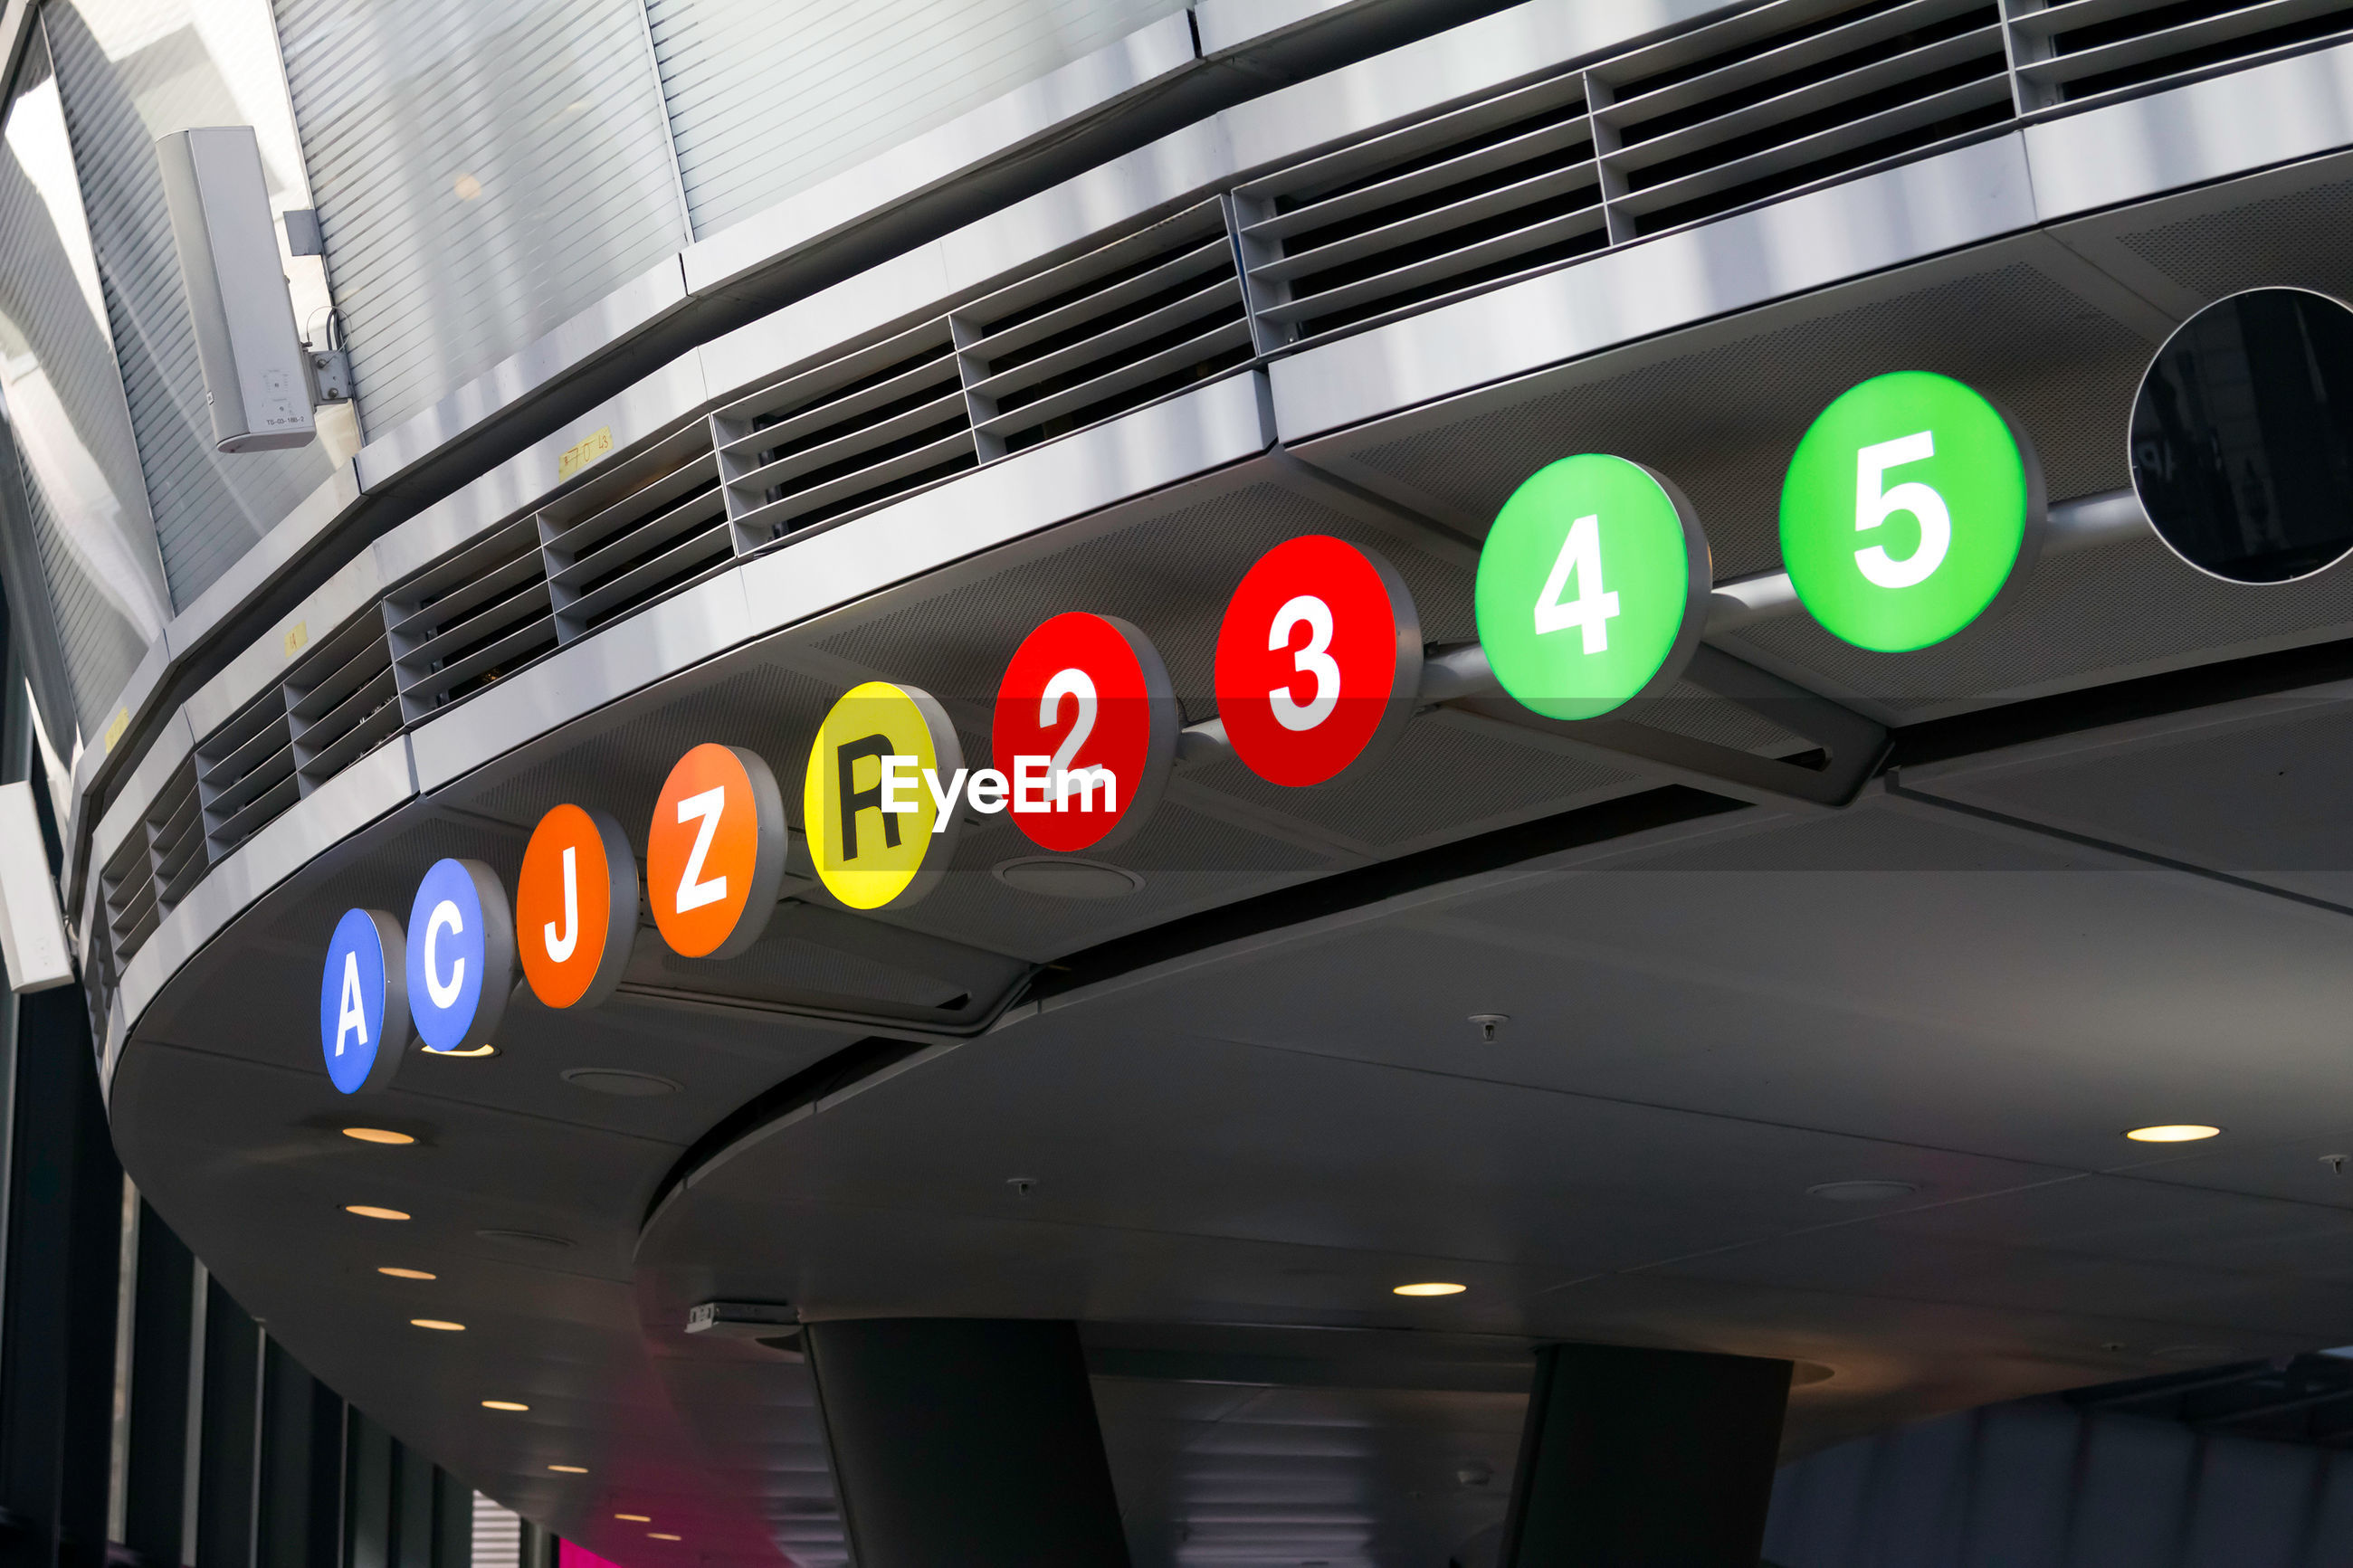 Colorful sign board in subway station